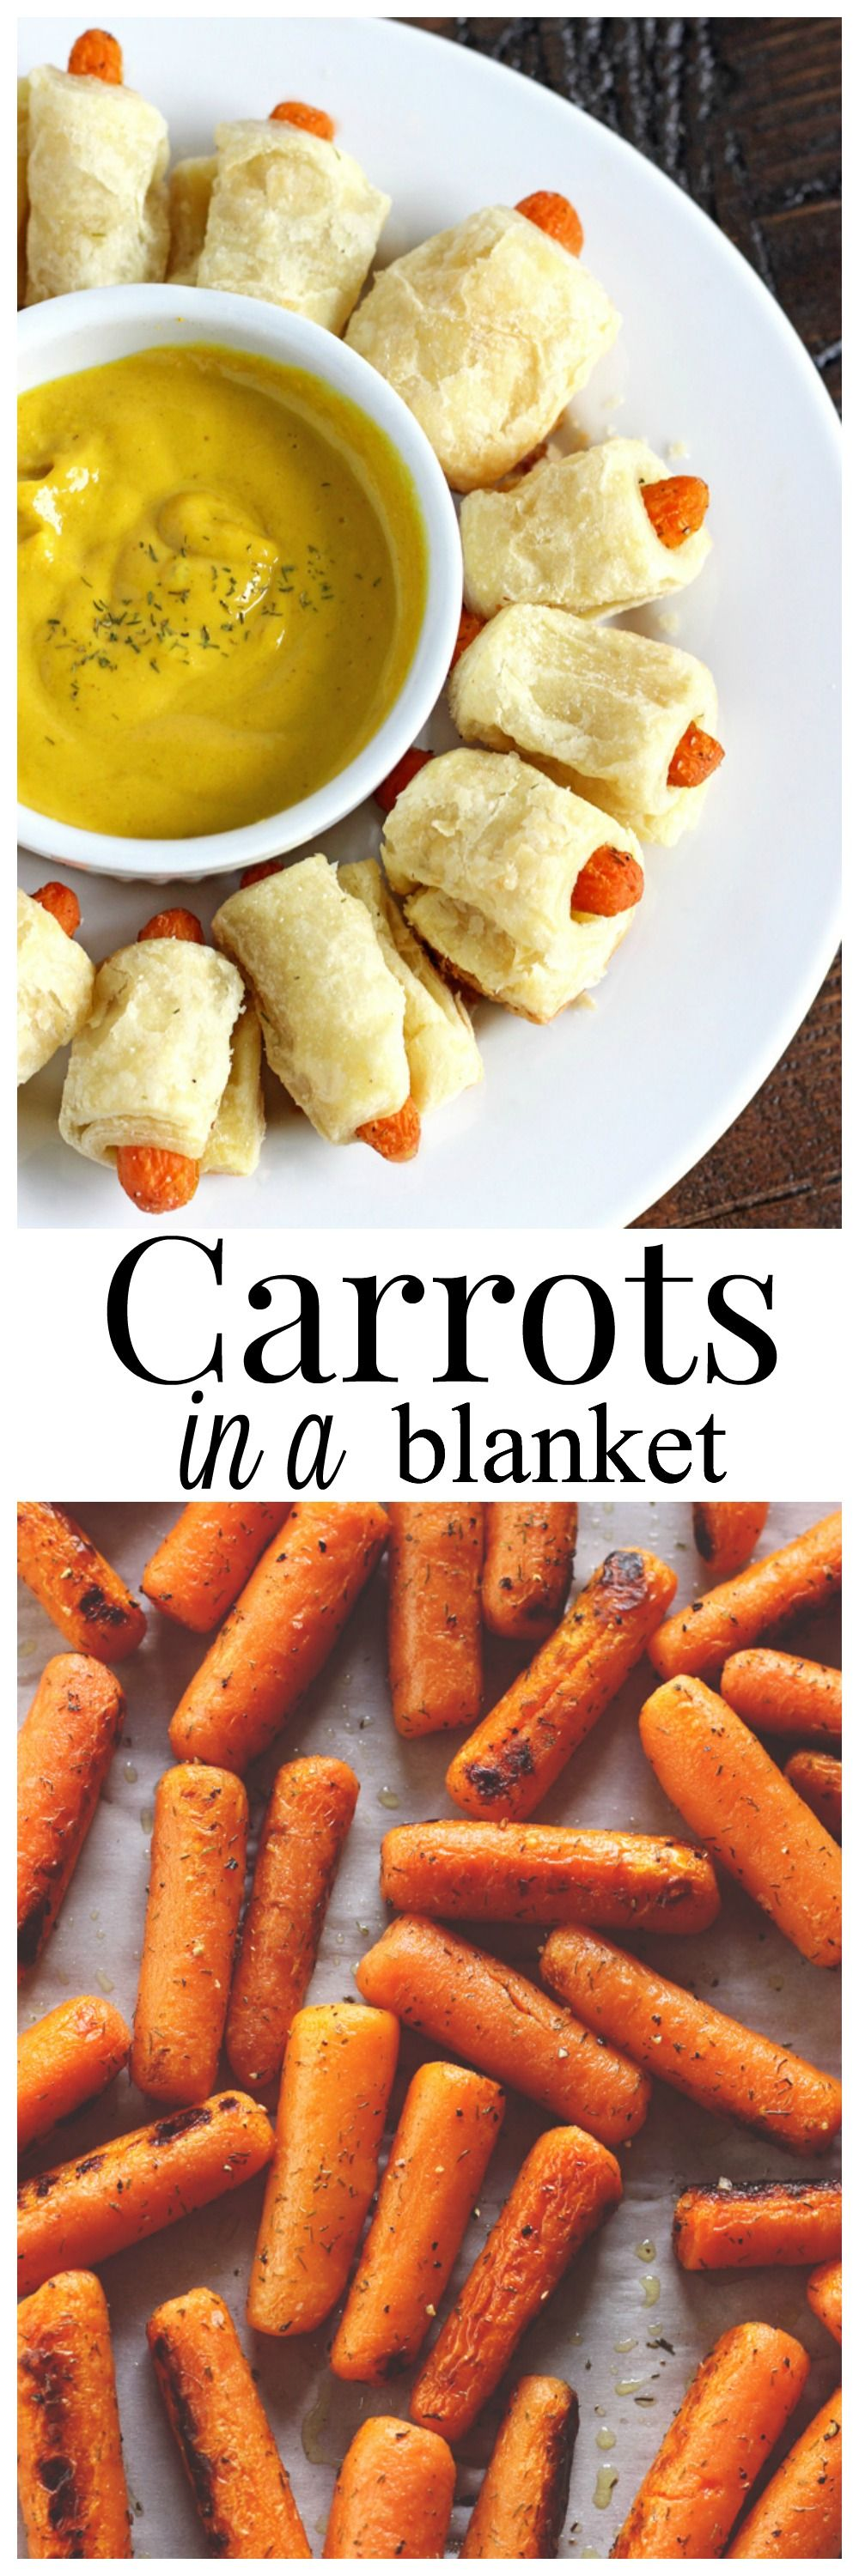 carrots in a blanket   recipe   cruelty free and carrots